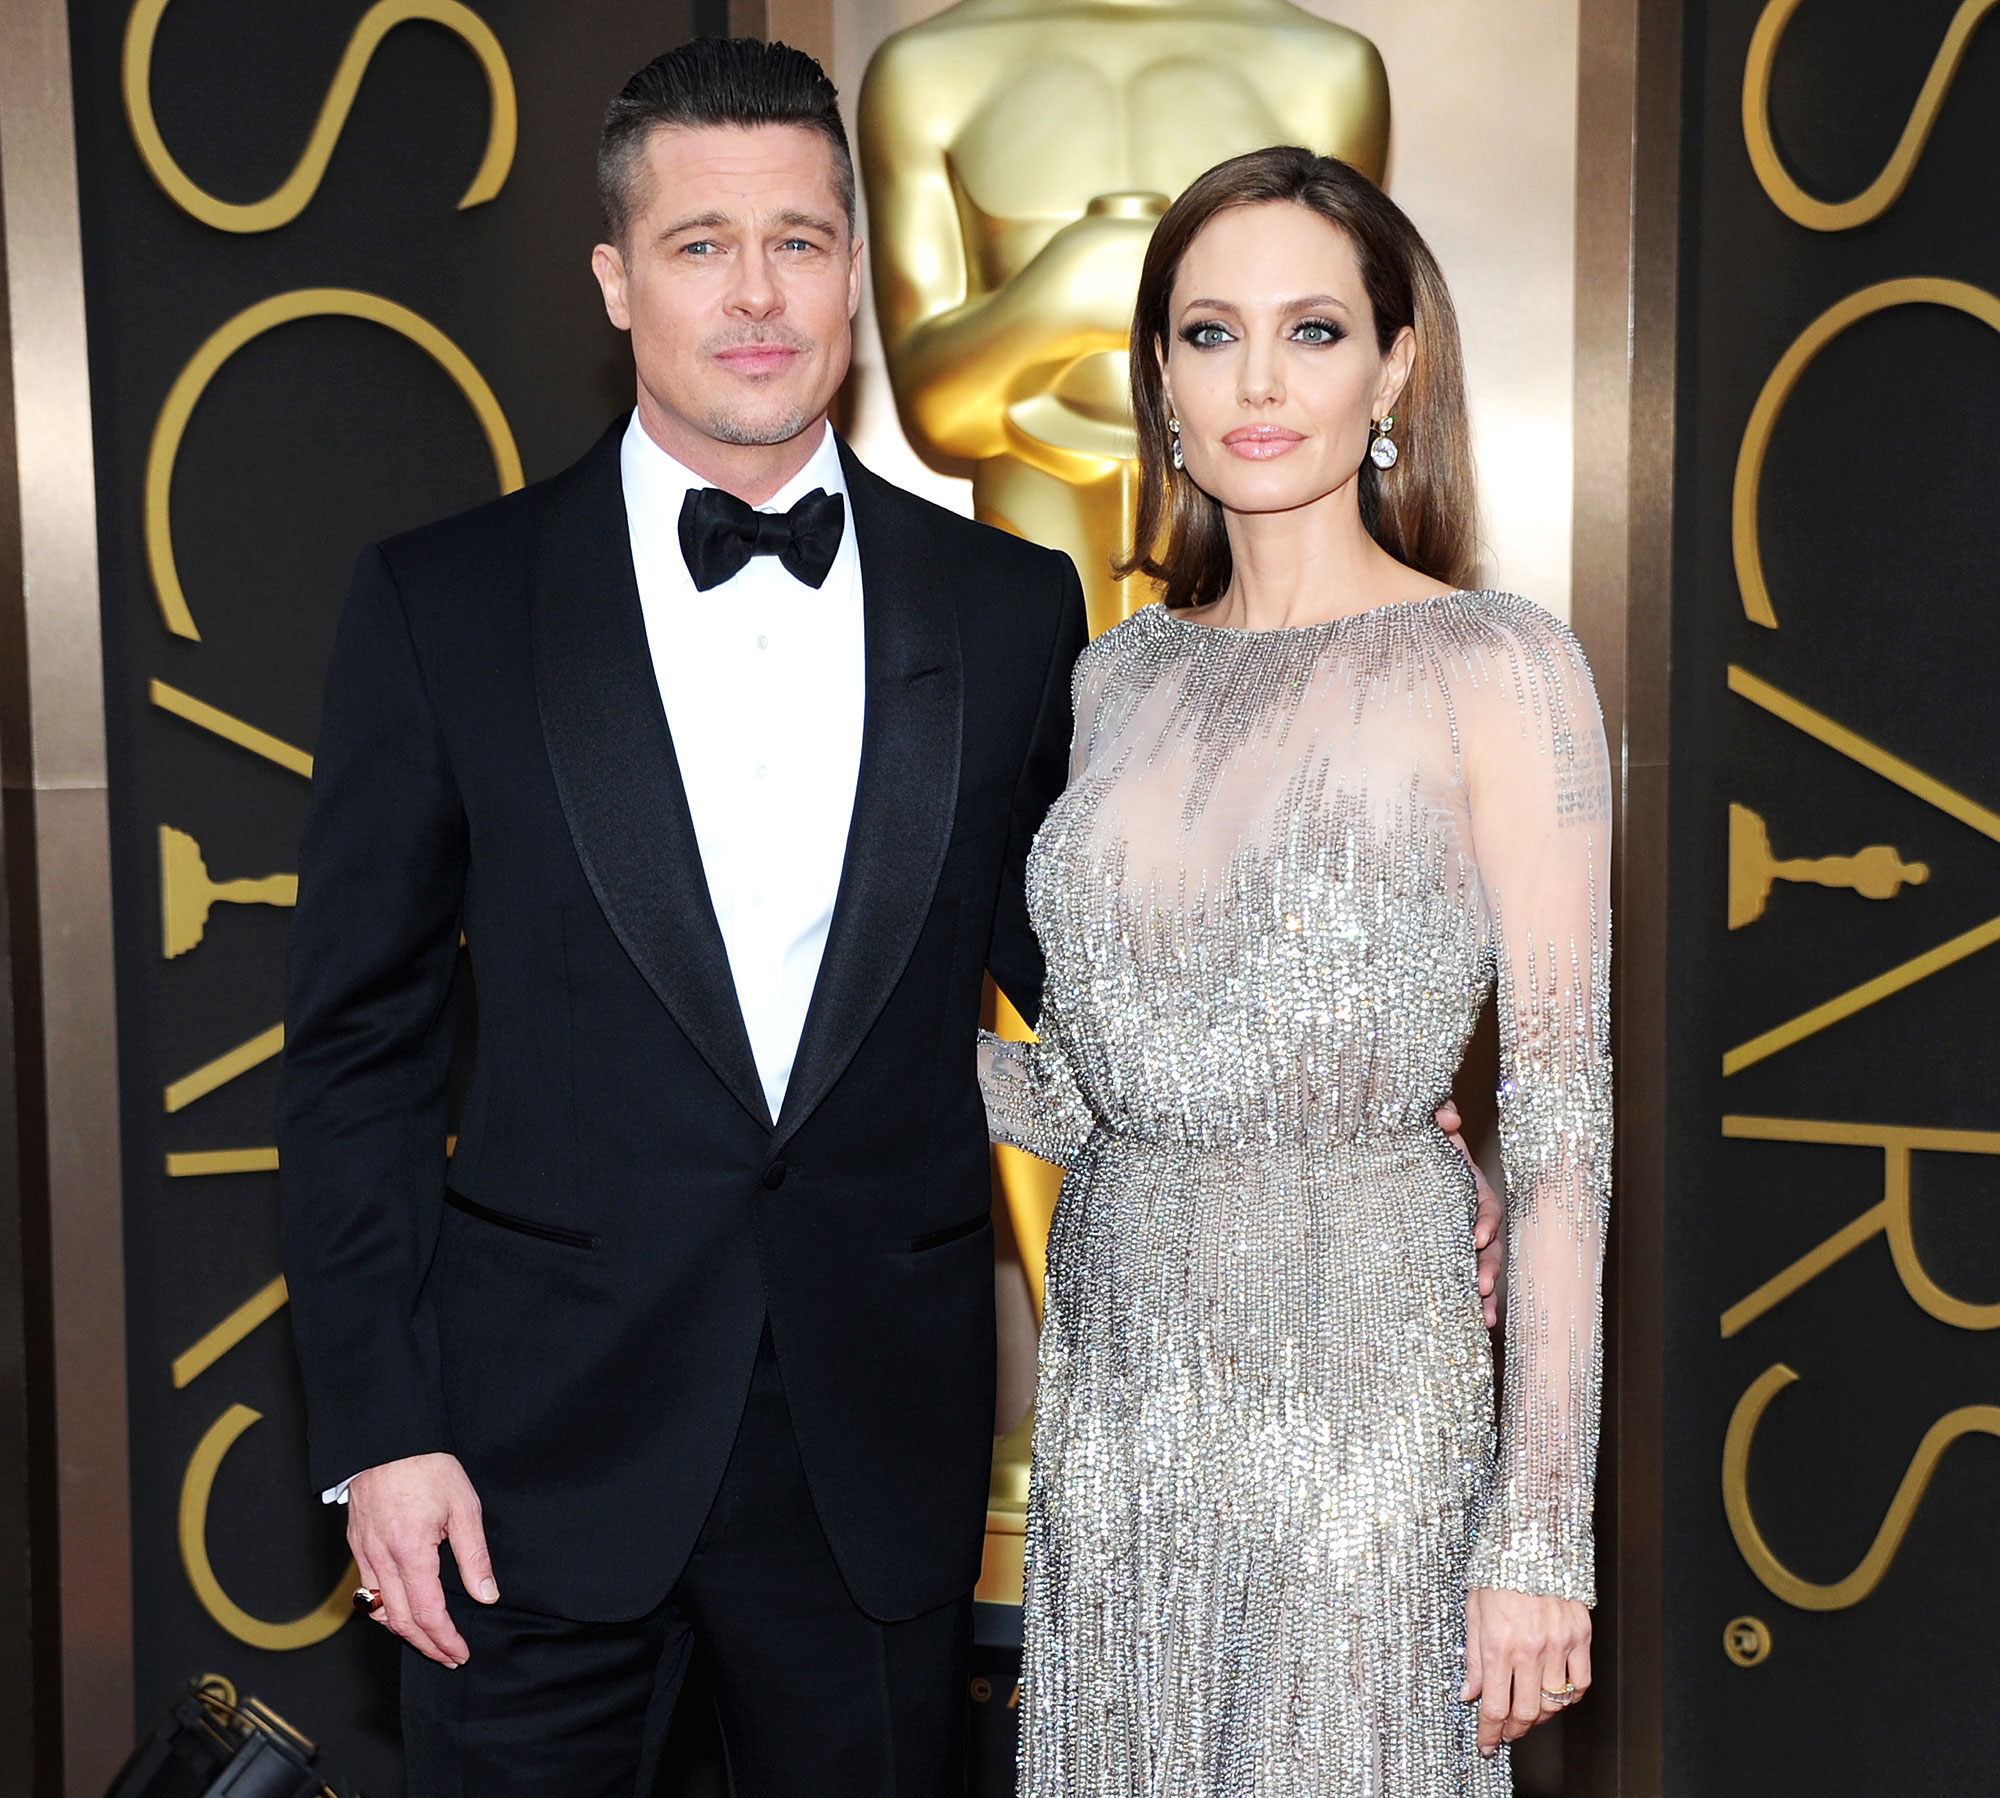 Brad Pitt And Angelina Jolie Wedding Pictures: Brad Pitt, Angelina Jolie Request More Time To Settle Custody